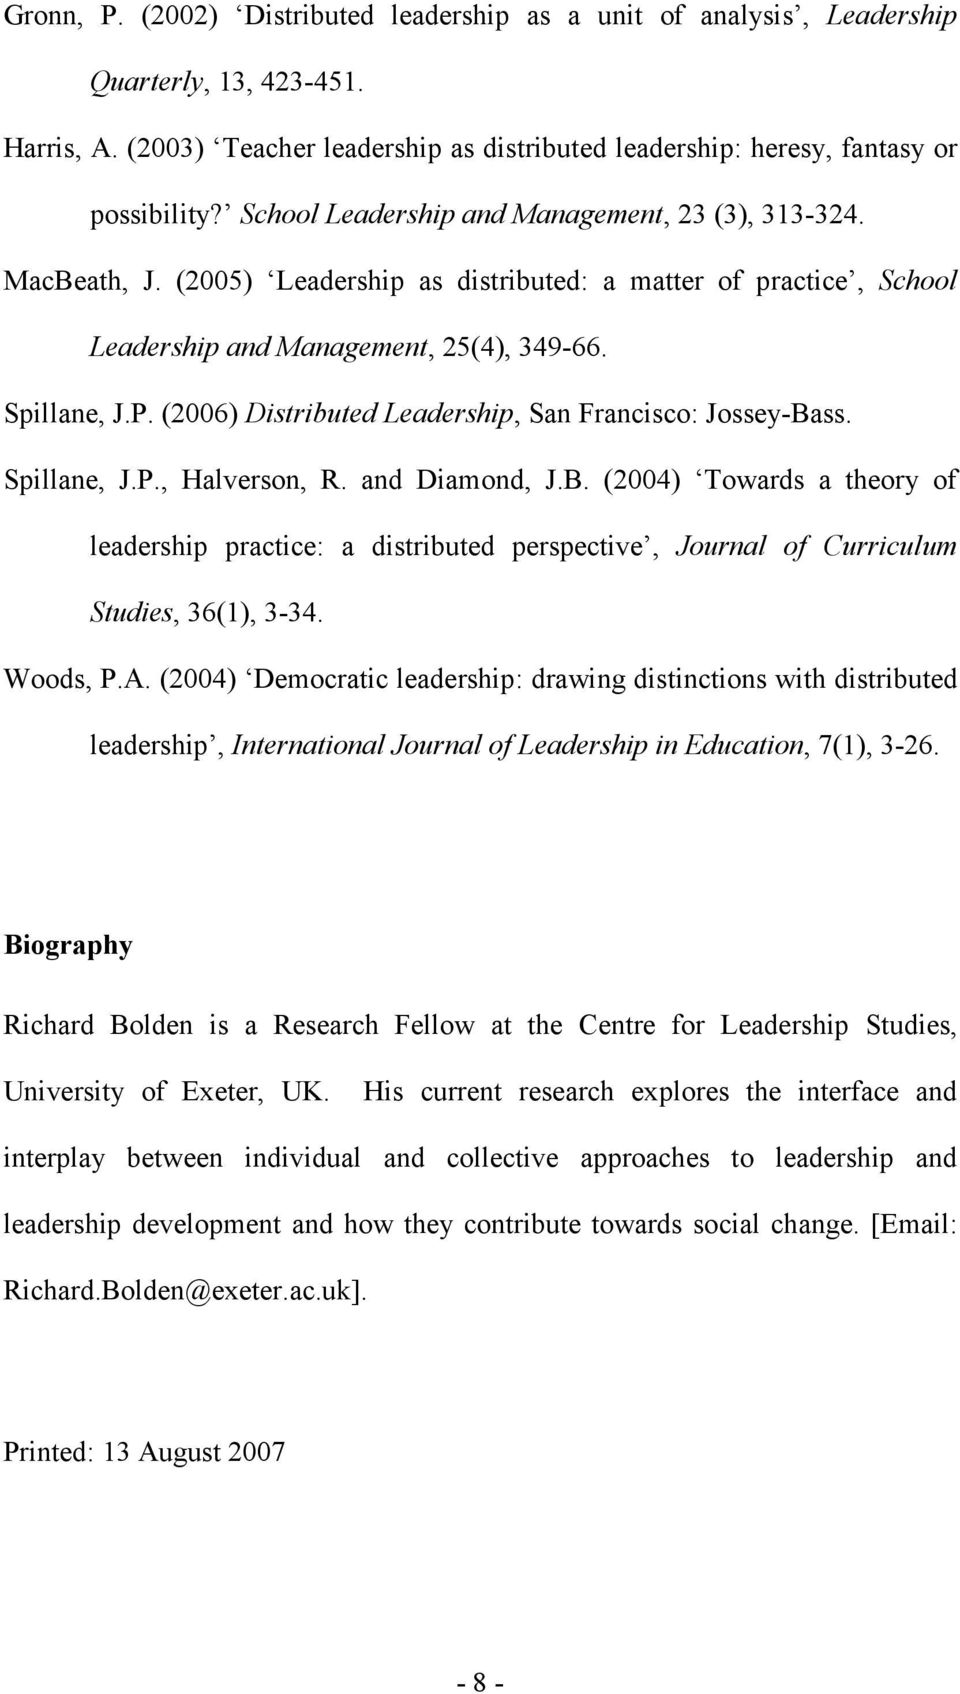 (2006) Distributed Leadership, San Francisco: Jossey-Bass. Spillane, J.P., Halverson, R. and Diamond, J.B. (2004) Towards a theory of leadership practice: a distributed perspective, Journal of Curriculum Studies, 36(1), 3-34.